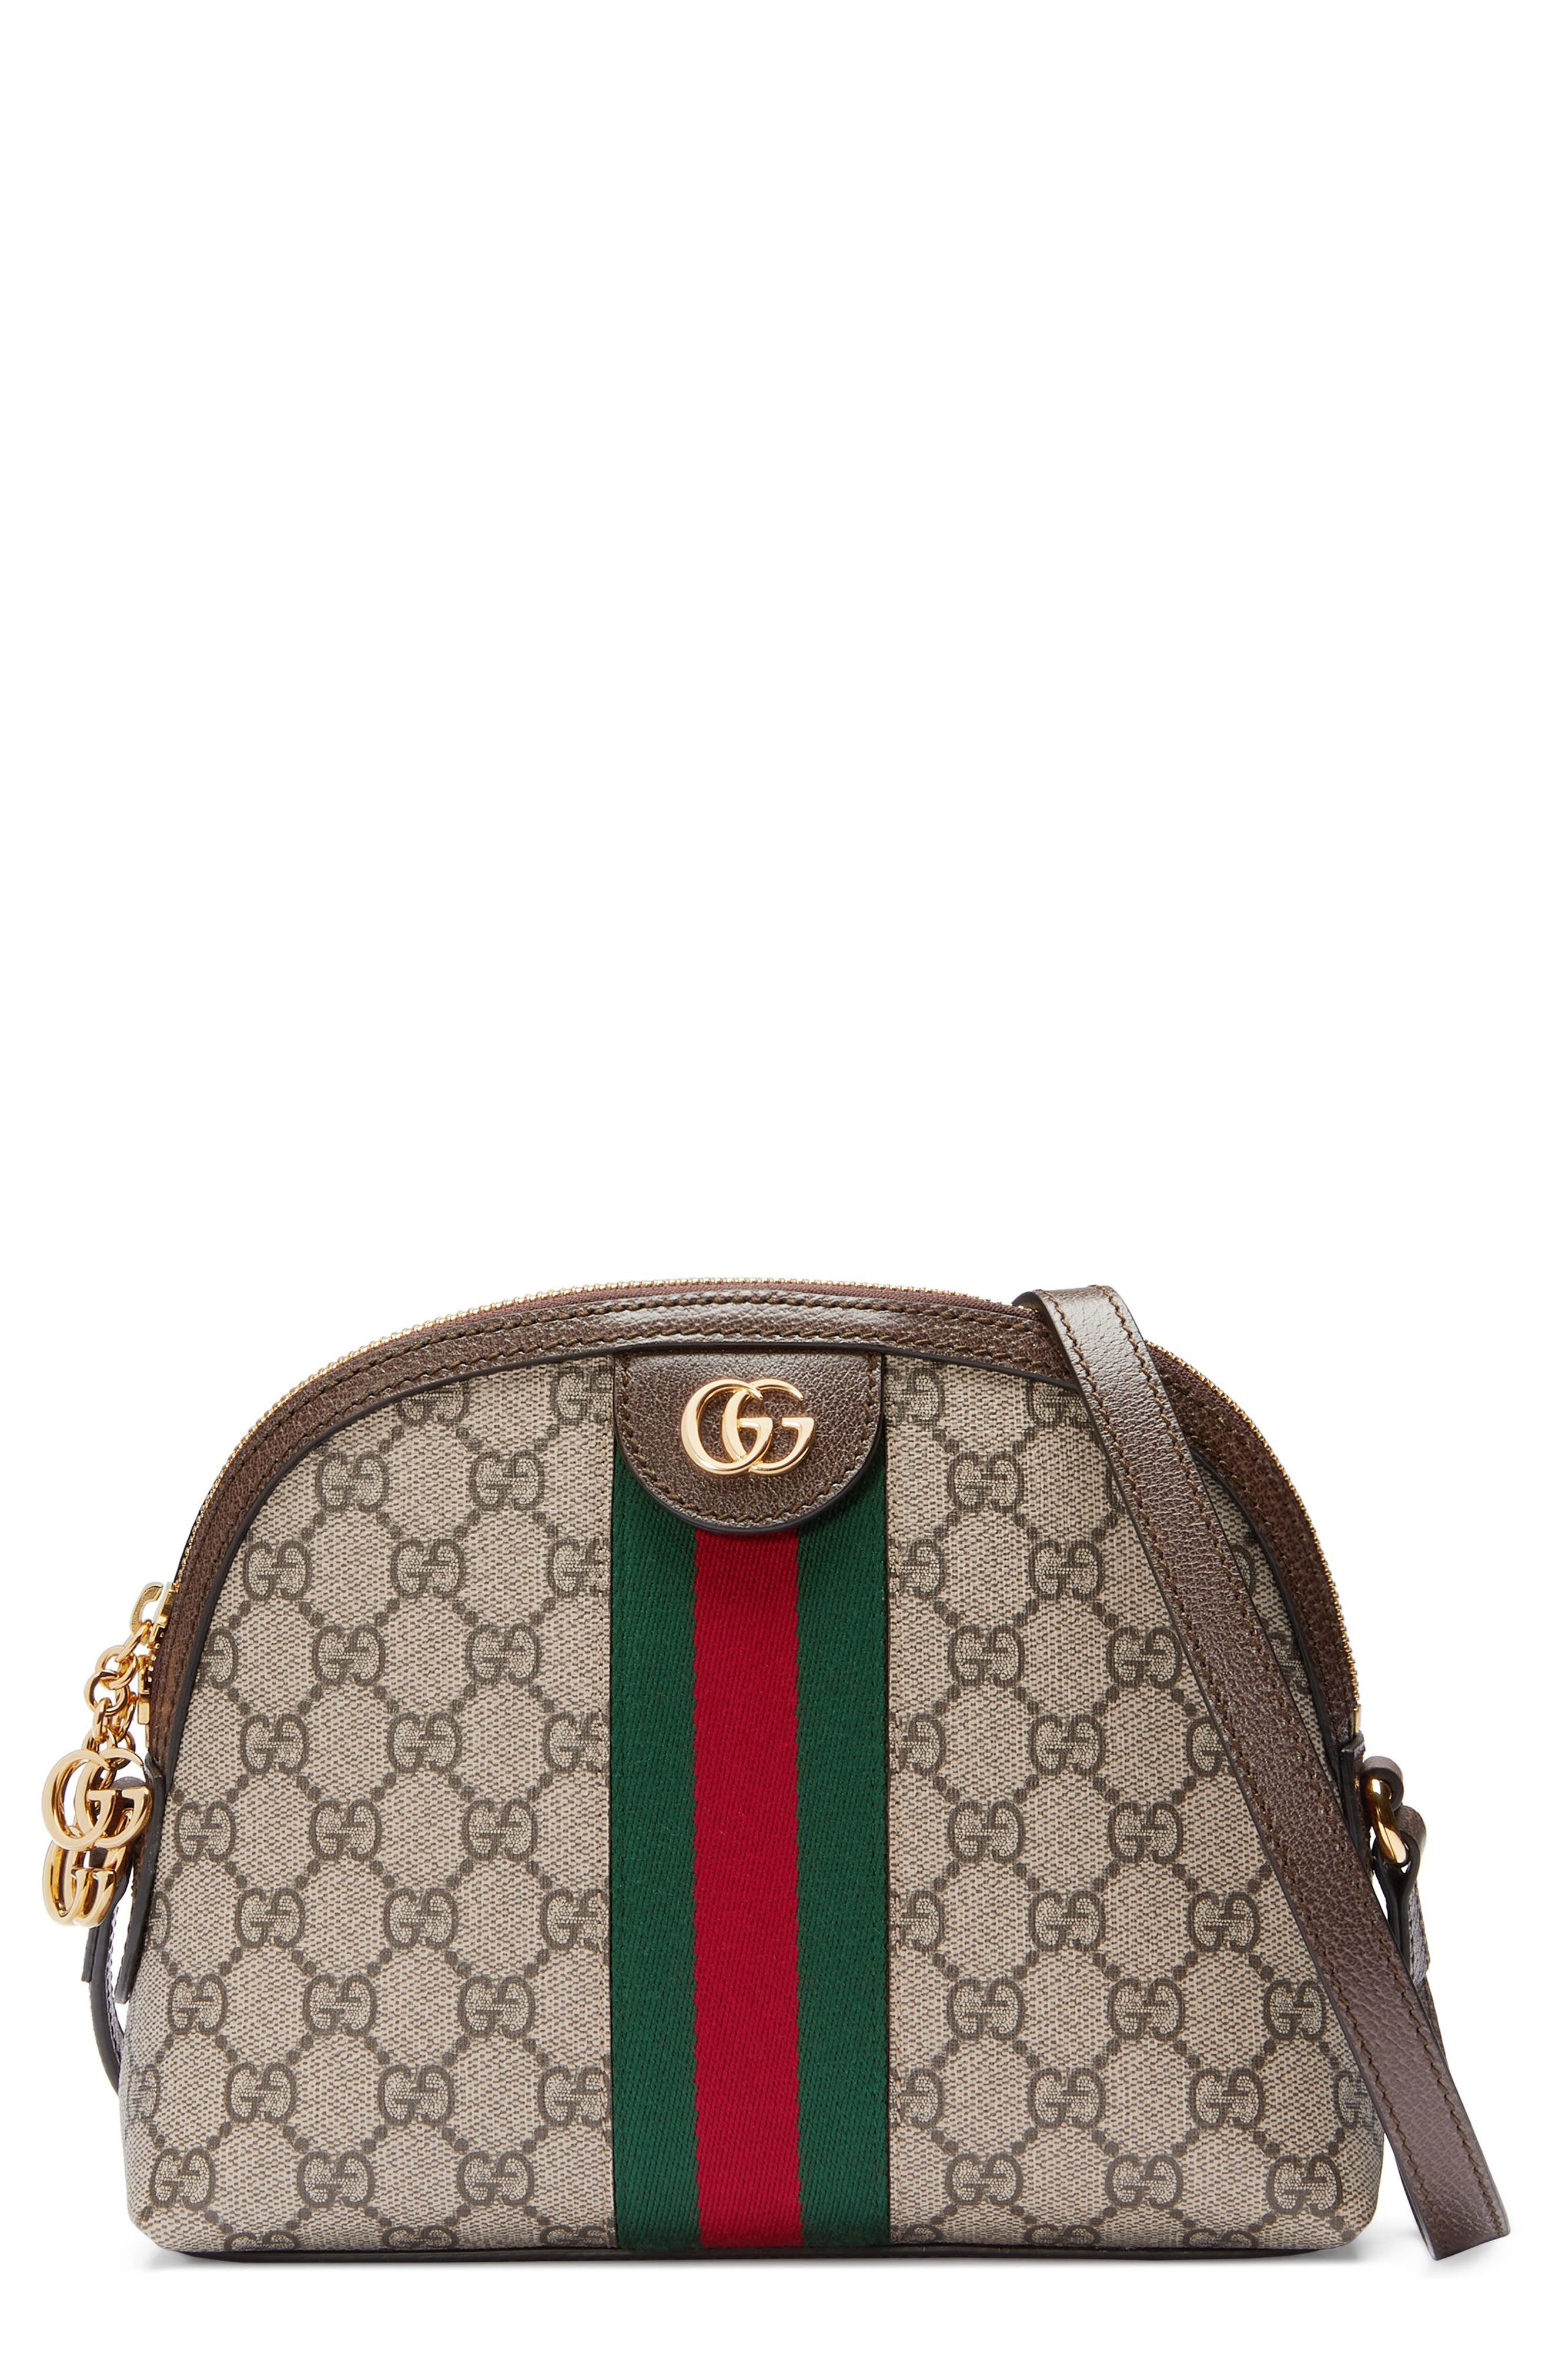 GUCCI GG Supreme Canvas Shoulder Bag, Main, color, BEIGE EBONY/ NERO/ RED